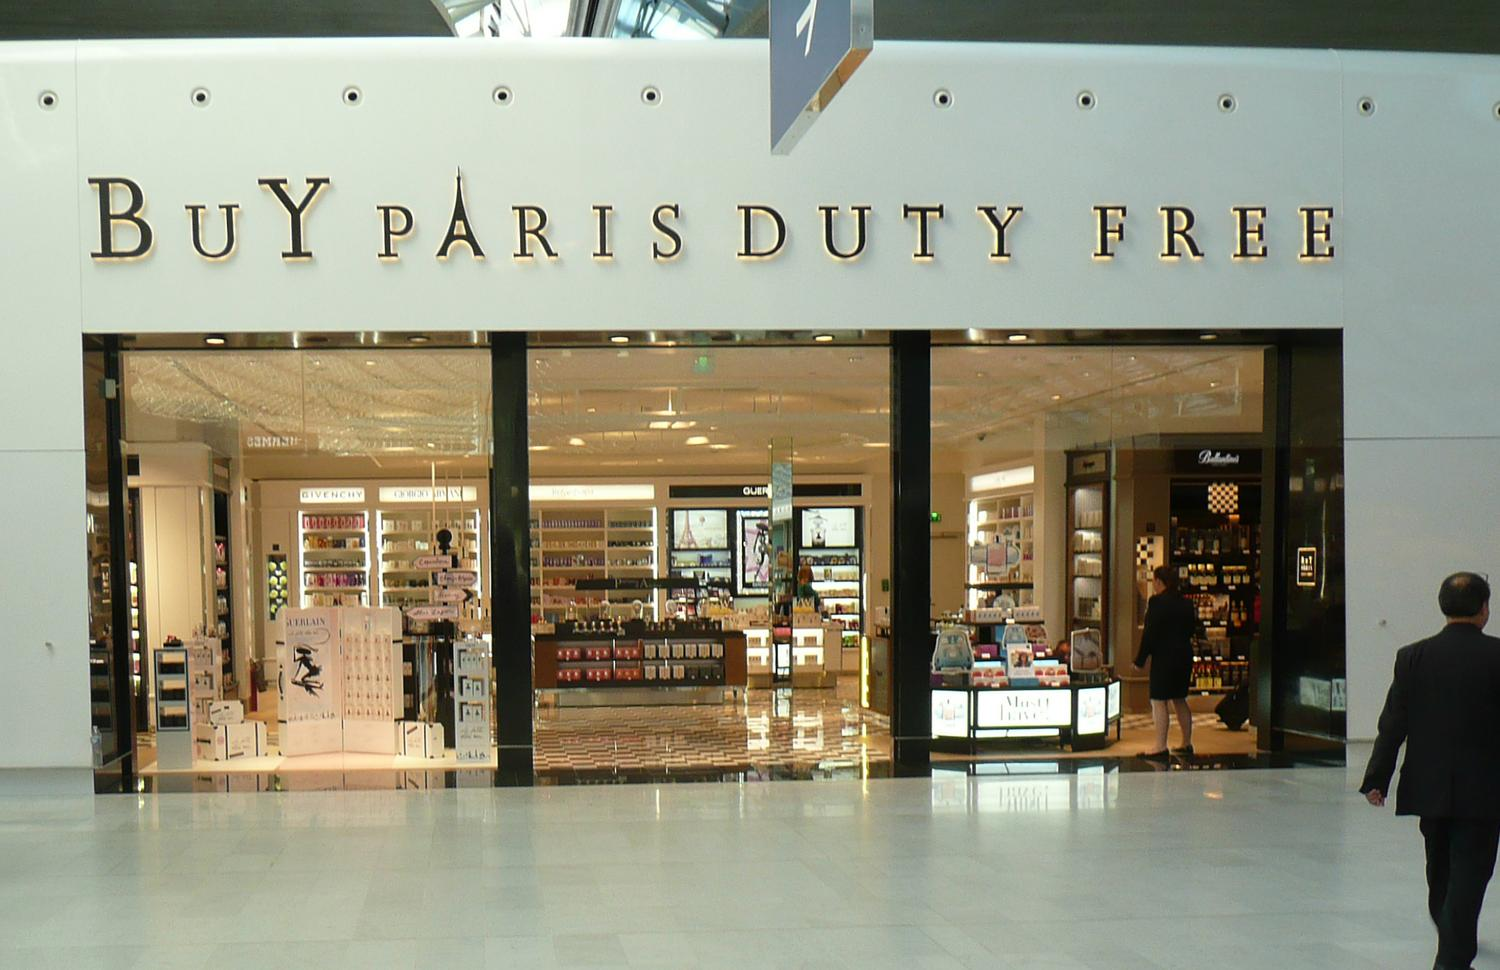 agencement tous corps d'état buy paris duty free-MEDIA6 Agencement